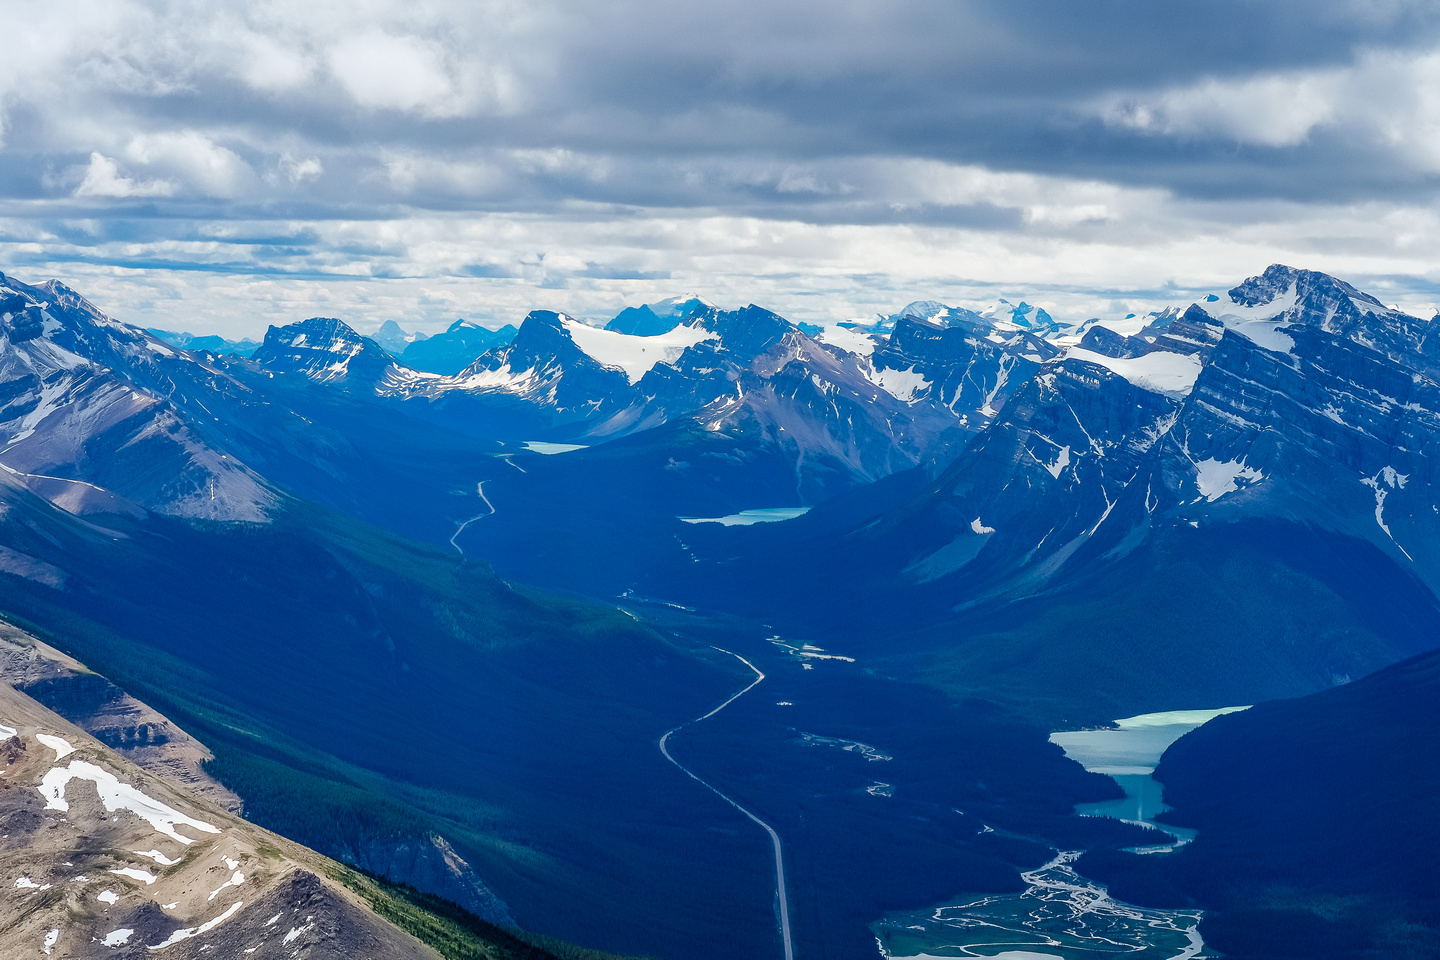 Bow Peak, Crowfoot Peak, Mount Temple, Bow Lake, Jimmy Simpson, Peyto Lake and Mount Patterson are all visible here.